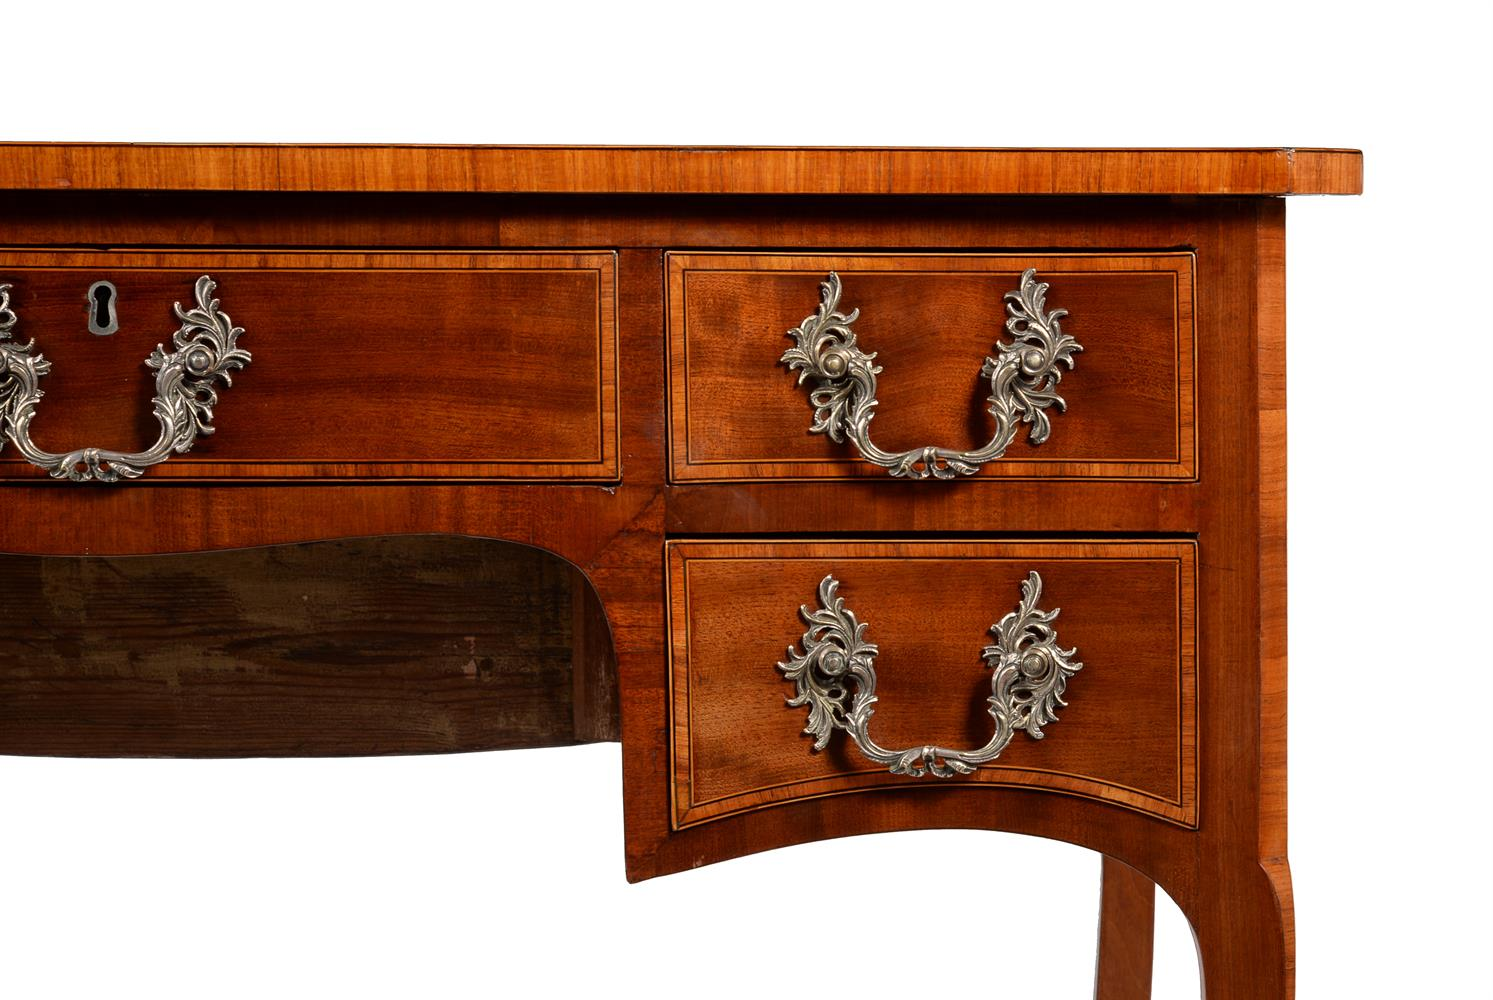 Y A GEORGE III MAHOGANY AND TULIPWOOD CROSSBANDED DRESSING TABLE, CIRCA 1785 - Image 4 of 4